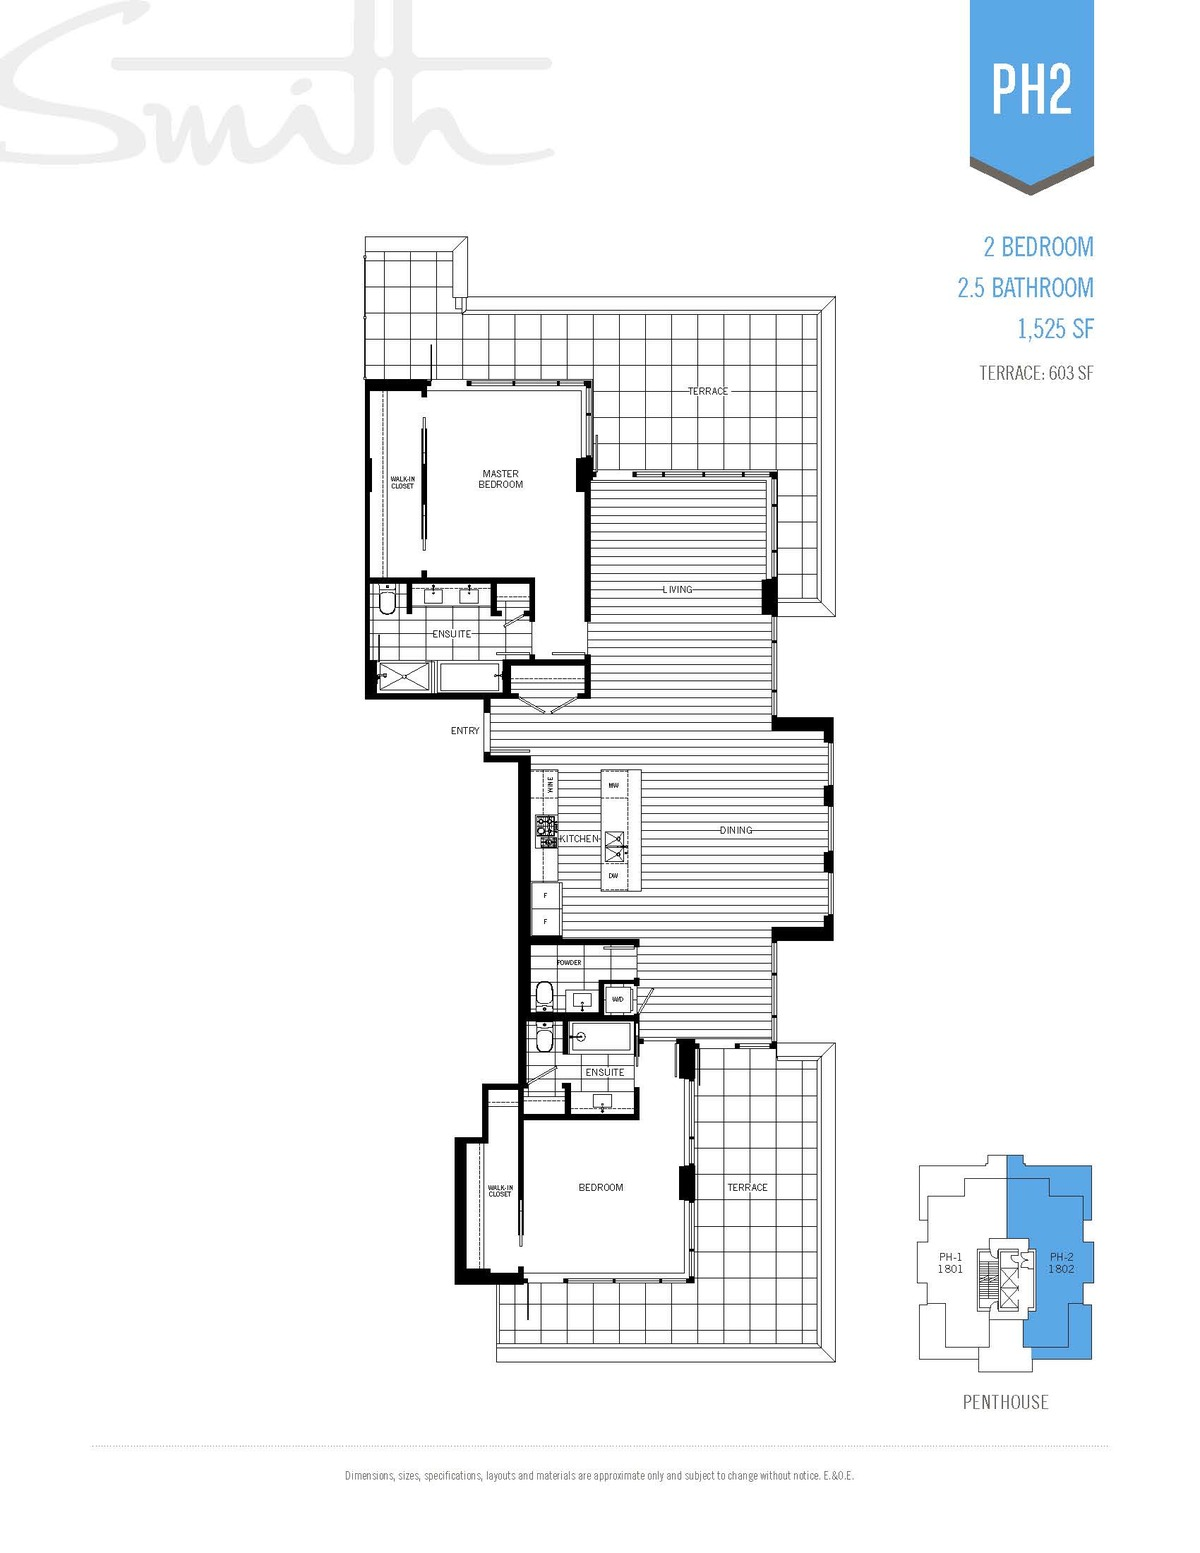 Smith Floorplan PH2